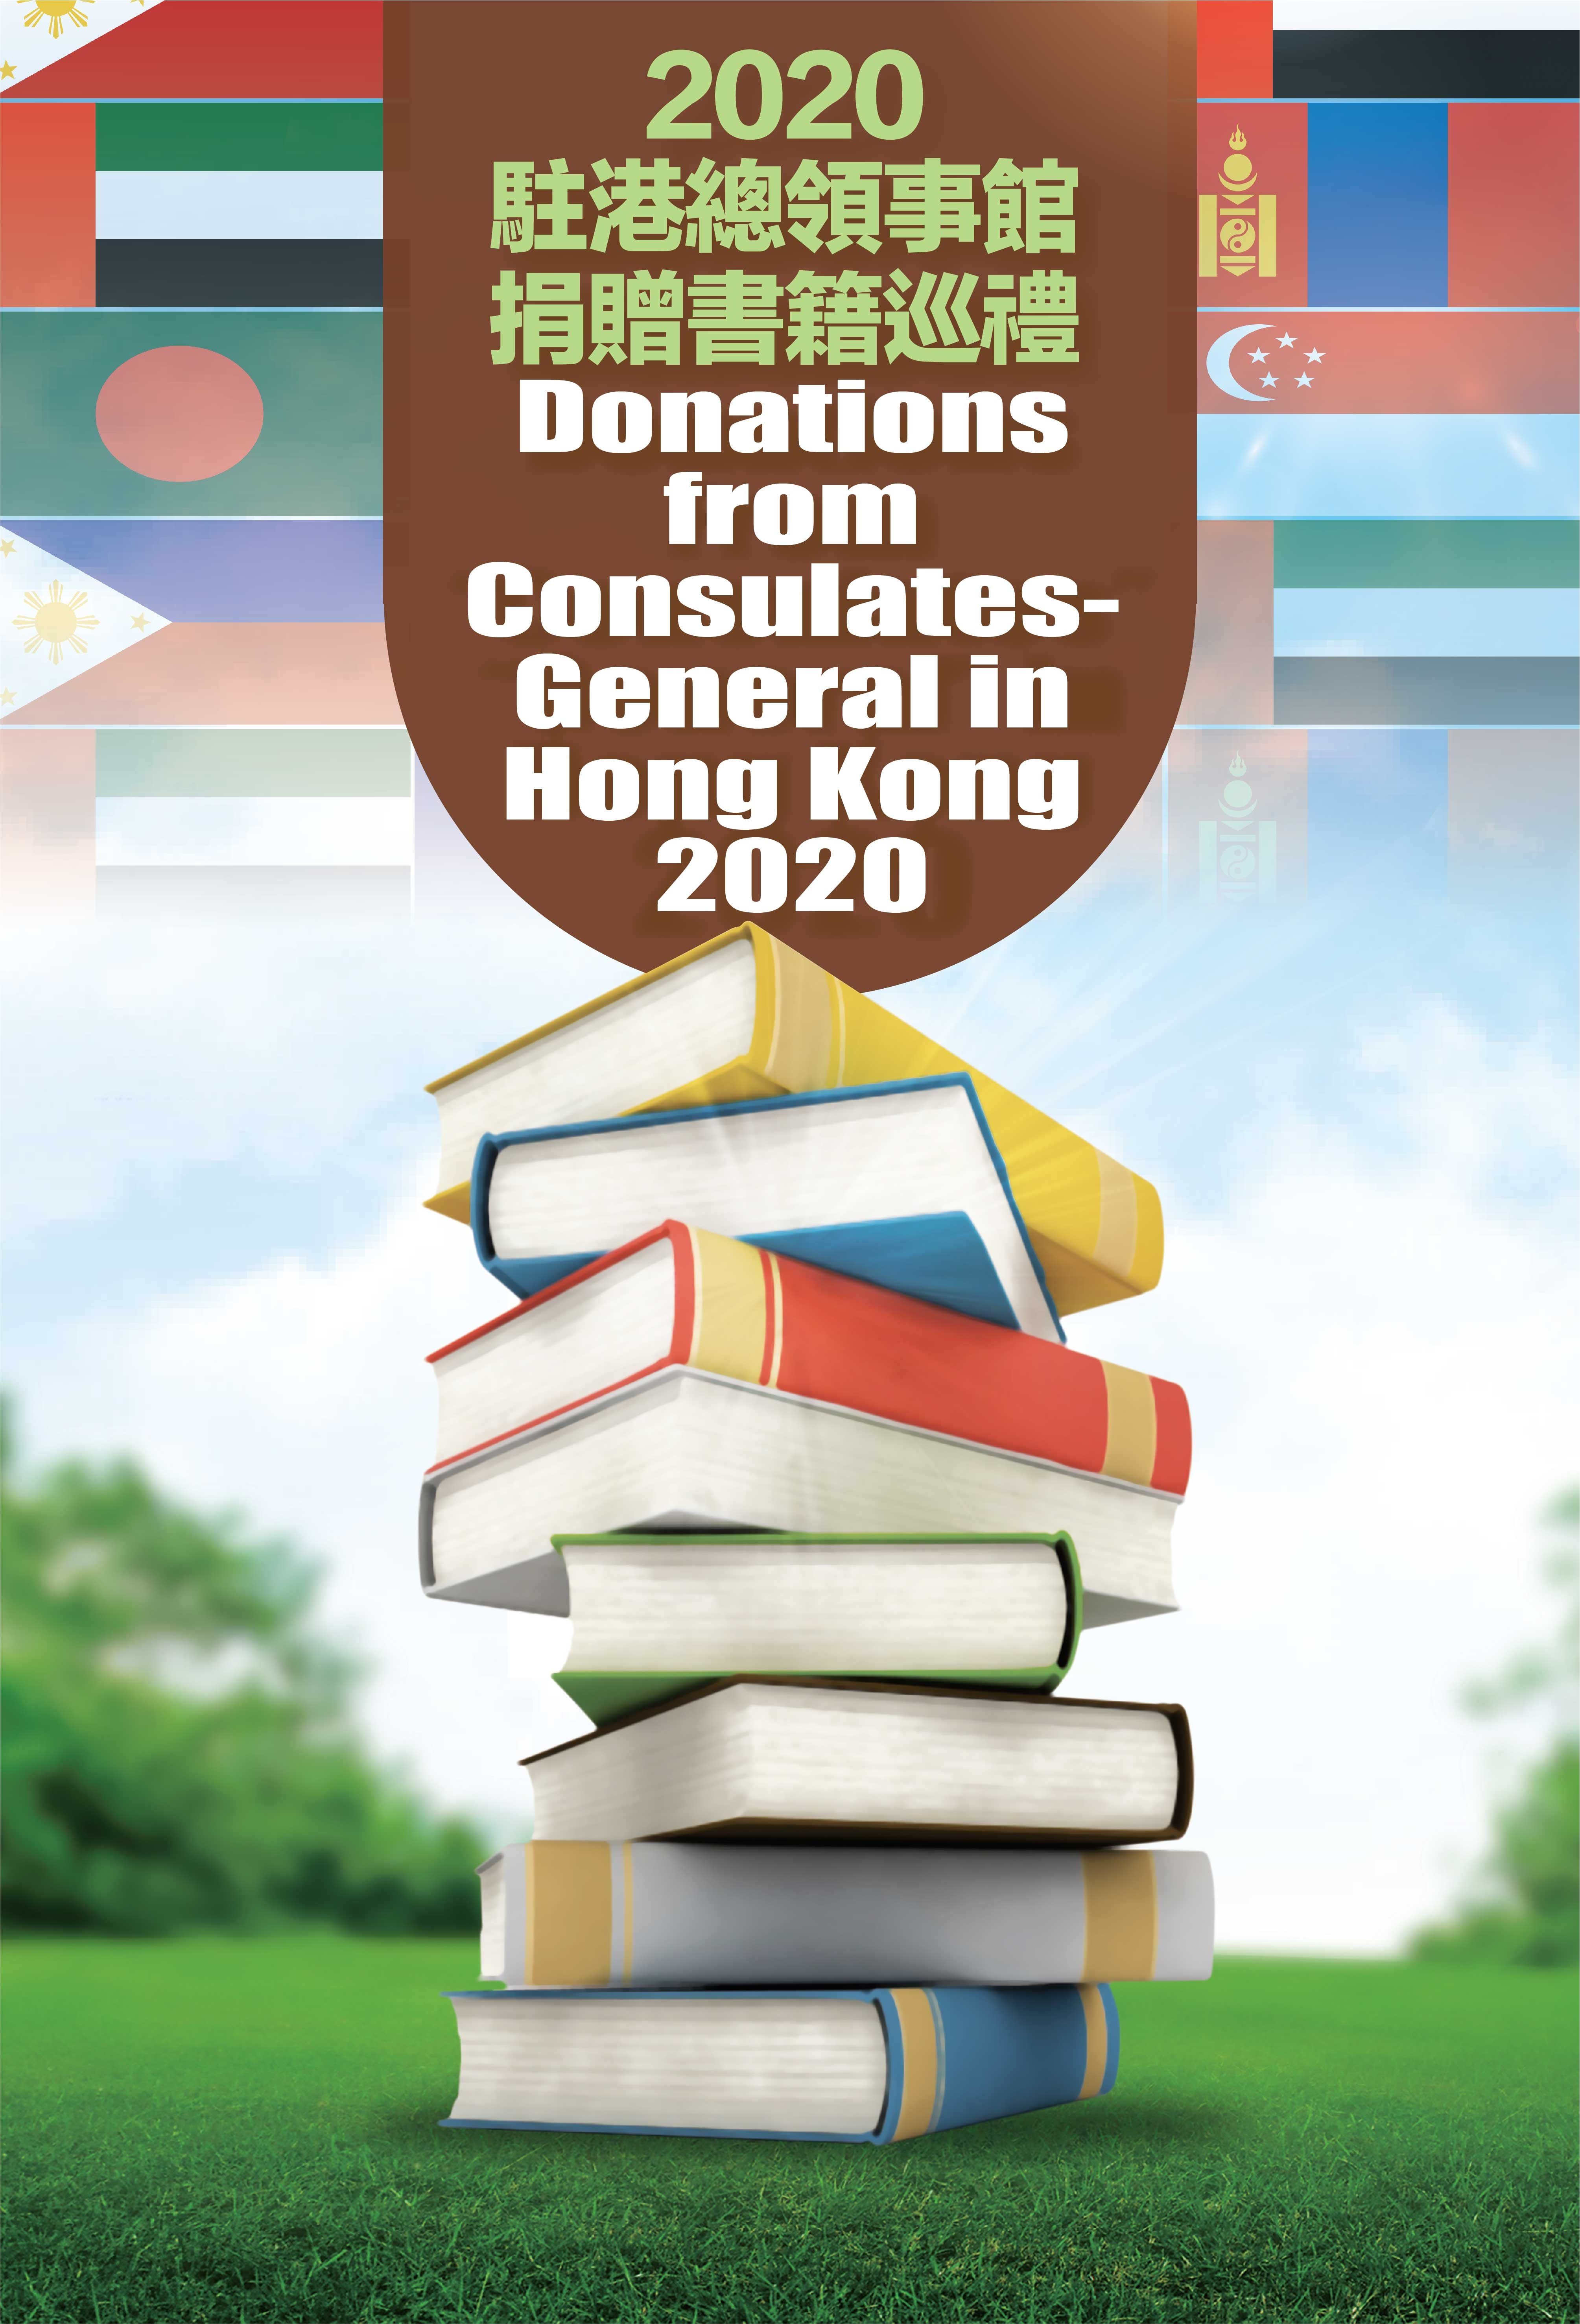 Donations from Consulates-General in Hong Kong 2020